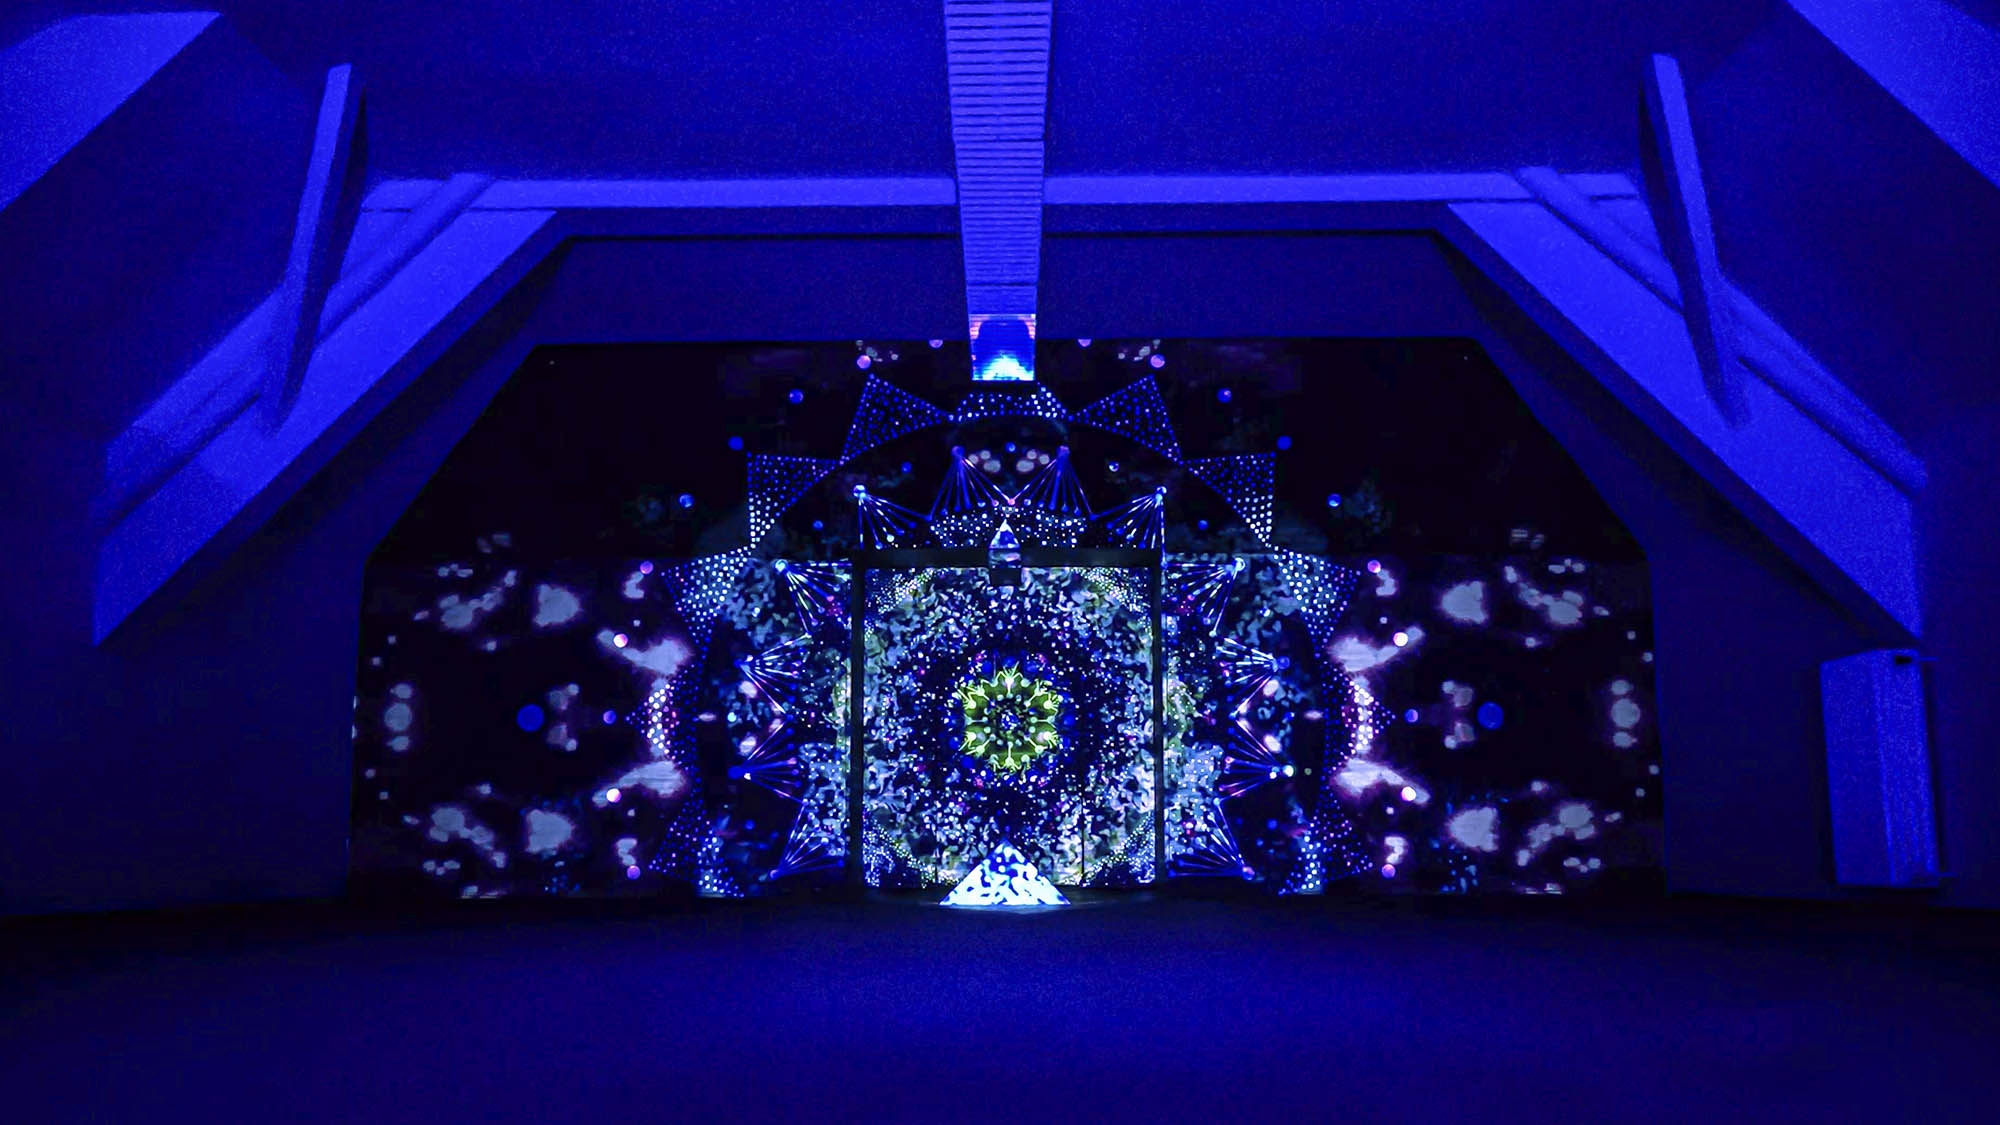 Image of a video art installation combined with a mural painting. Mandala geometric design with projection mapping art. Light artist philipp frank